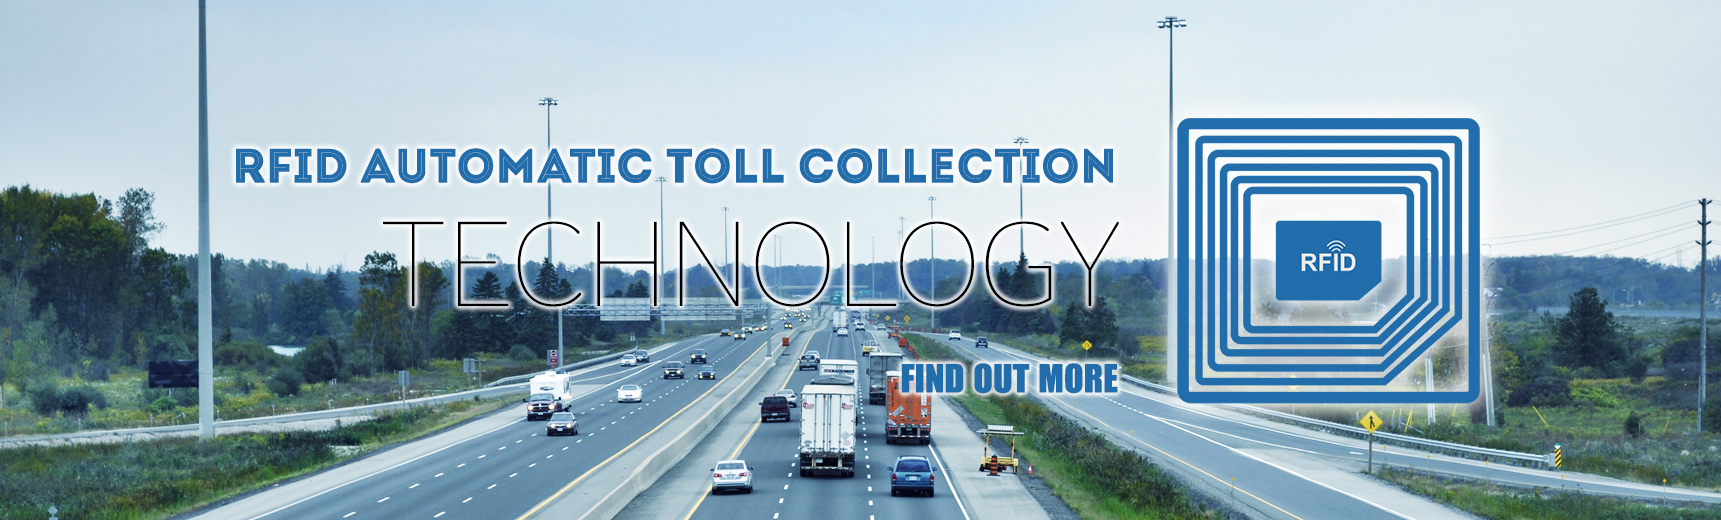 RFID AUTOMATIC TOLL COLLECTION TECHNOLOGY